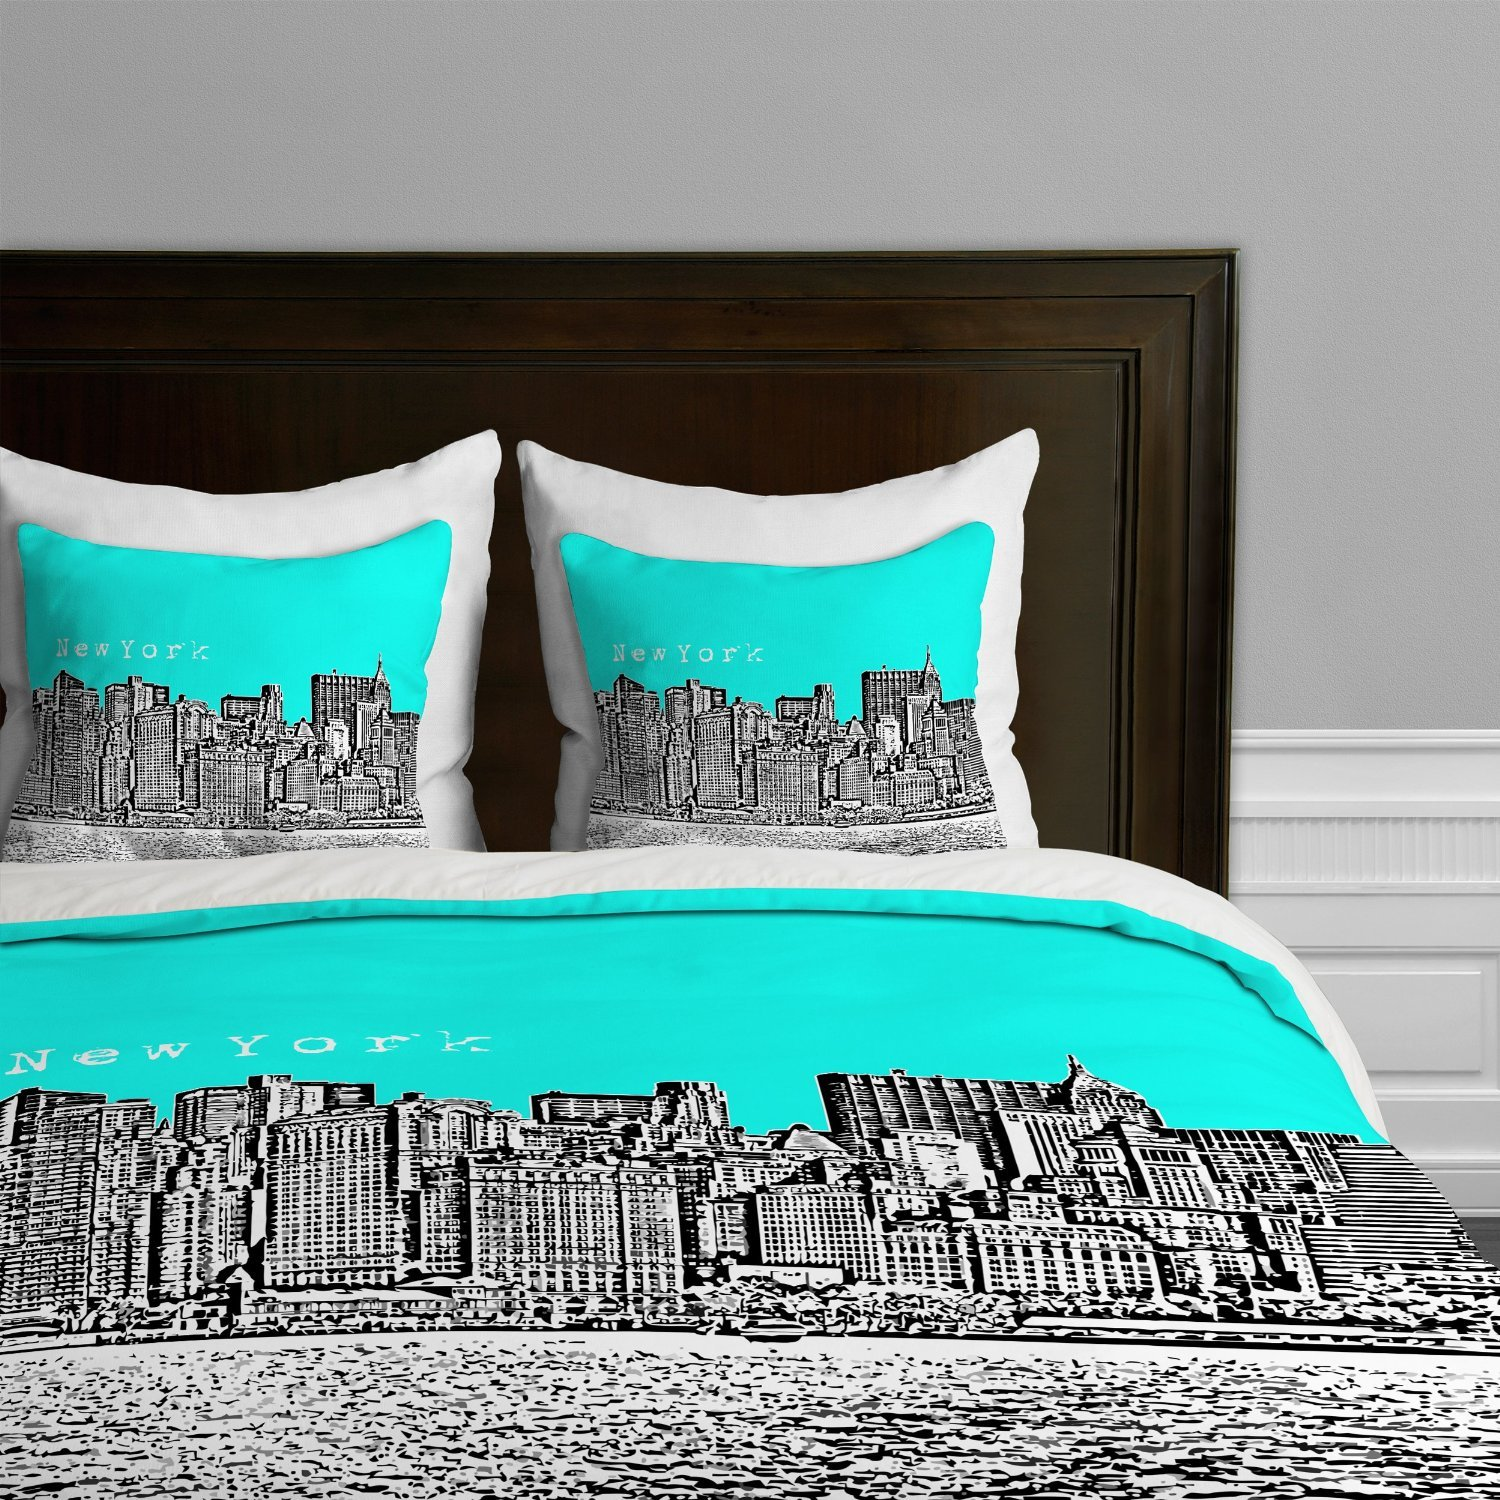 Best New York City Themed Skyline Comforters Sets Bedding And With Pictures